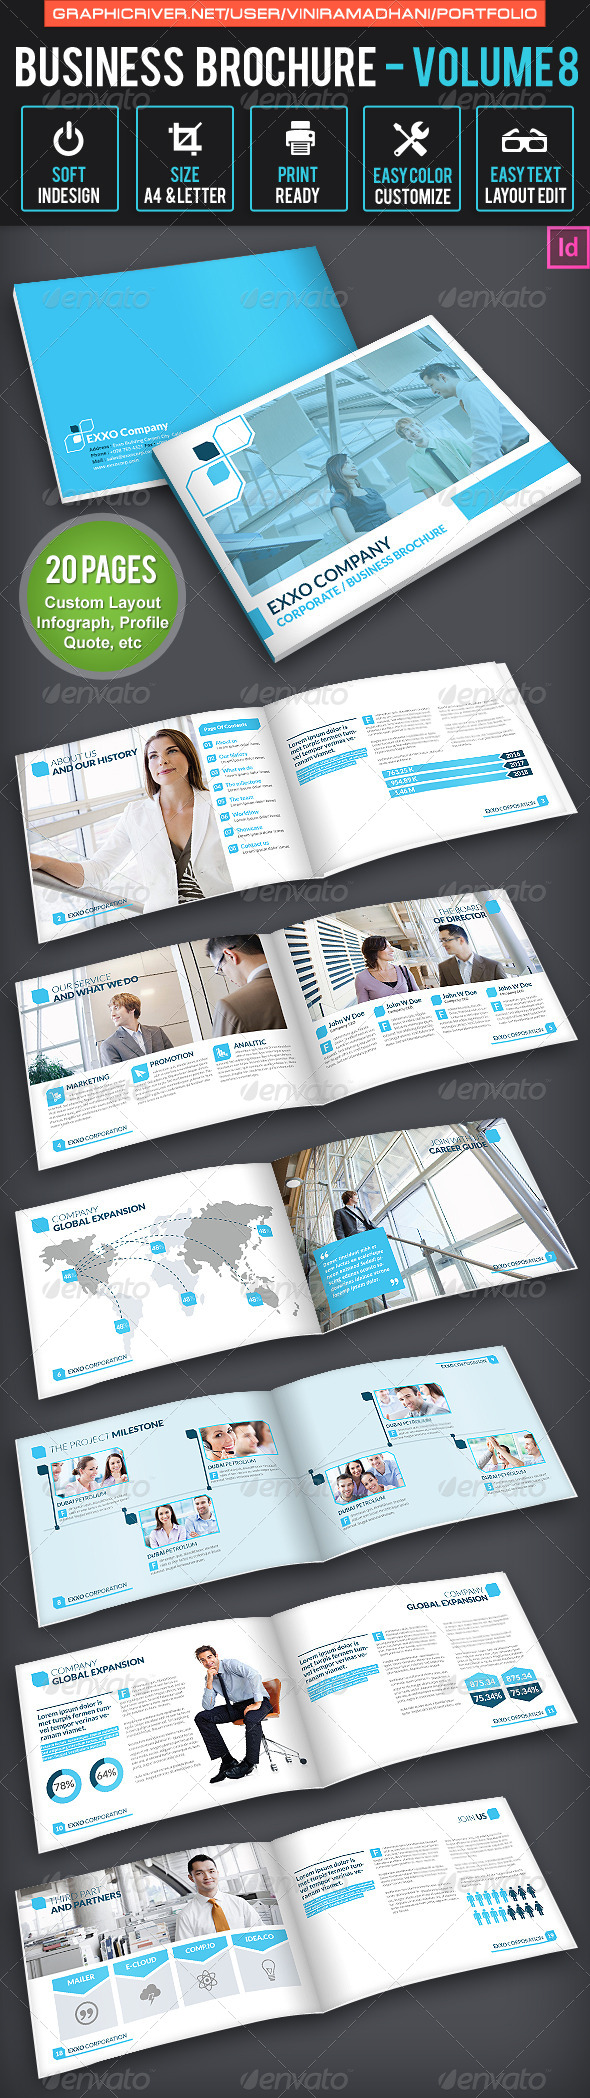 GraphicRiver Business Brochure Volume 8 6632650